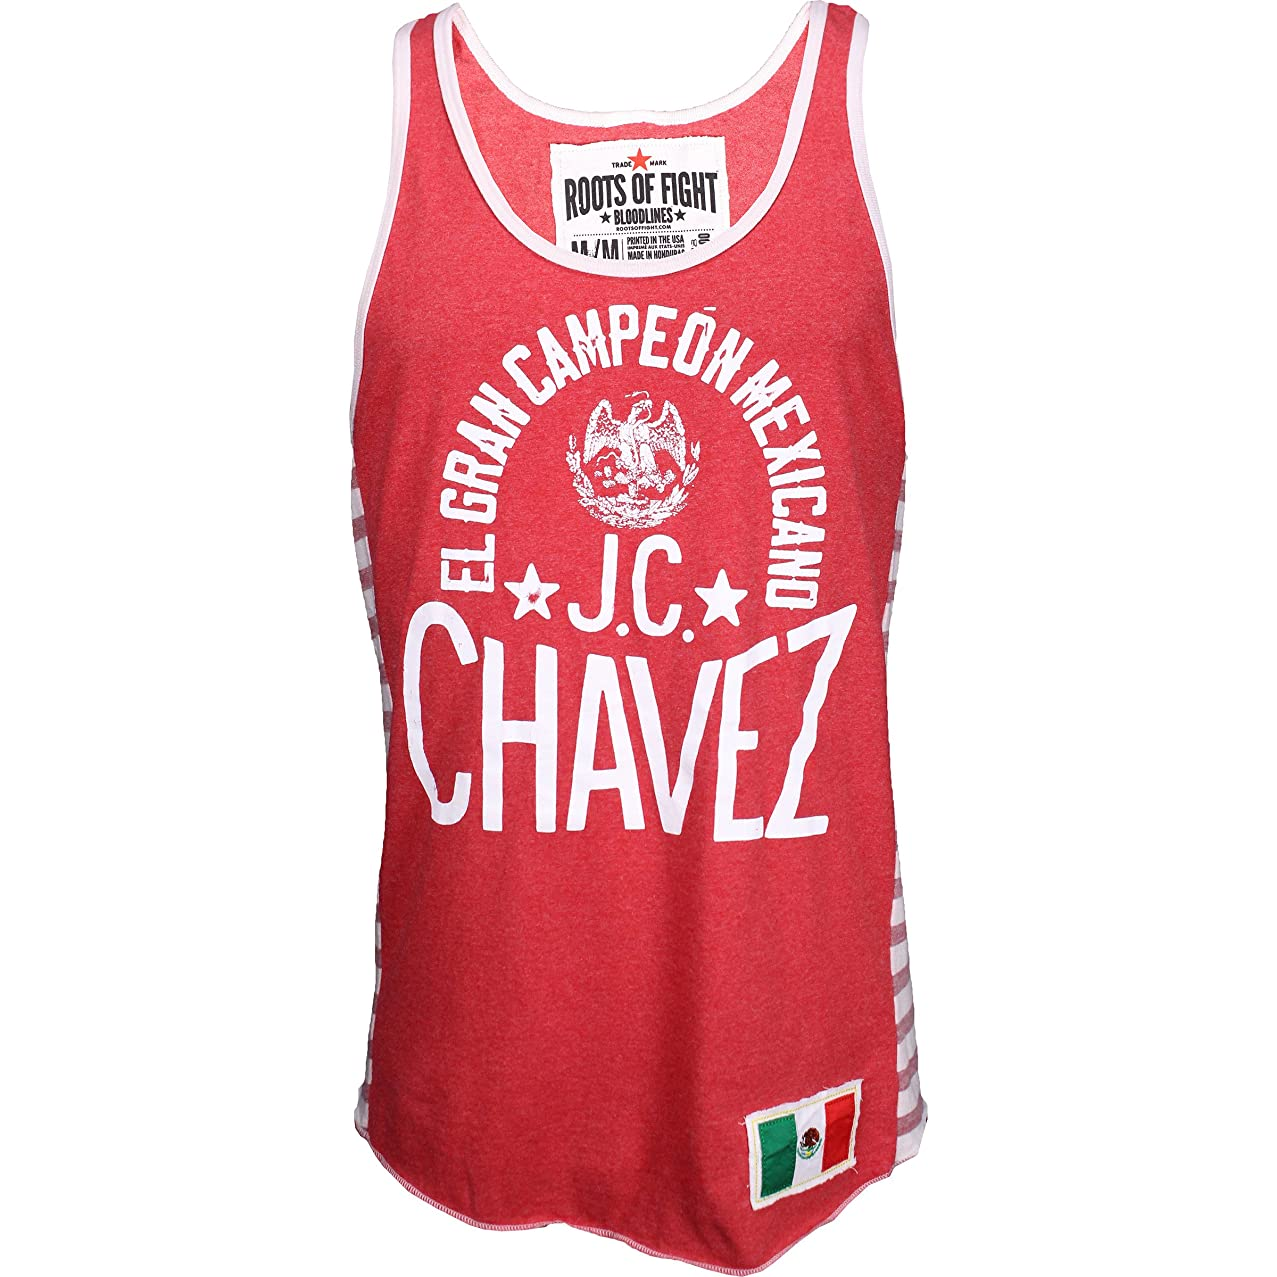 Roots of Fight Julio Cesar Chavez Striped Tank - Red - 2X-Large